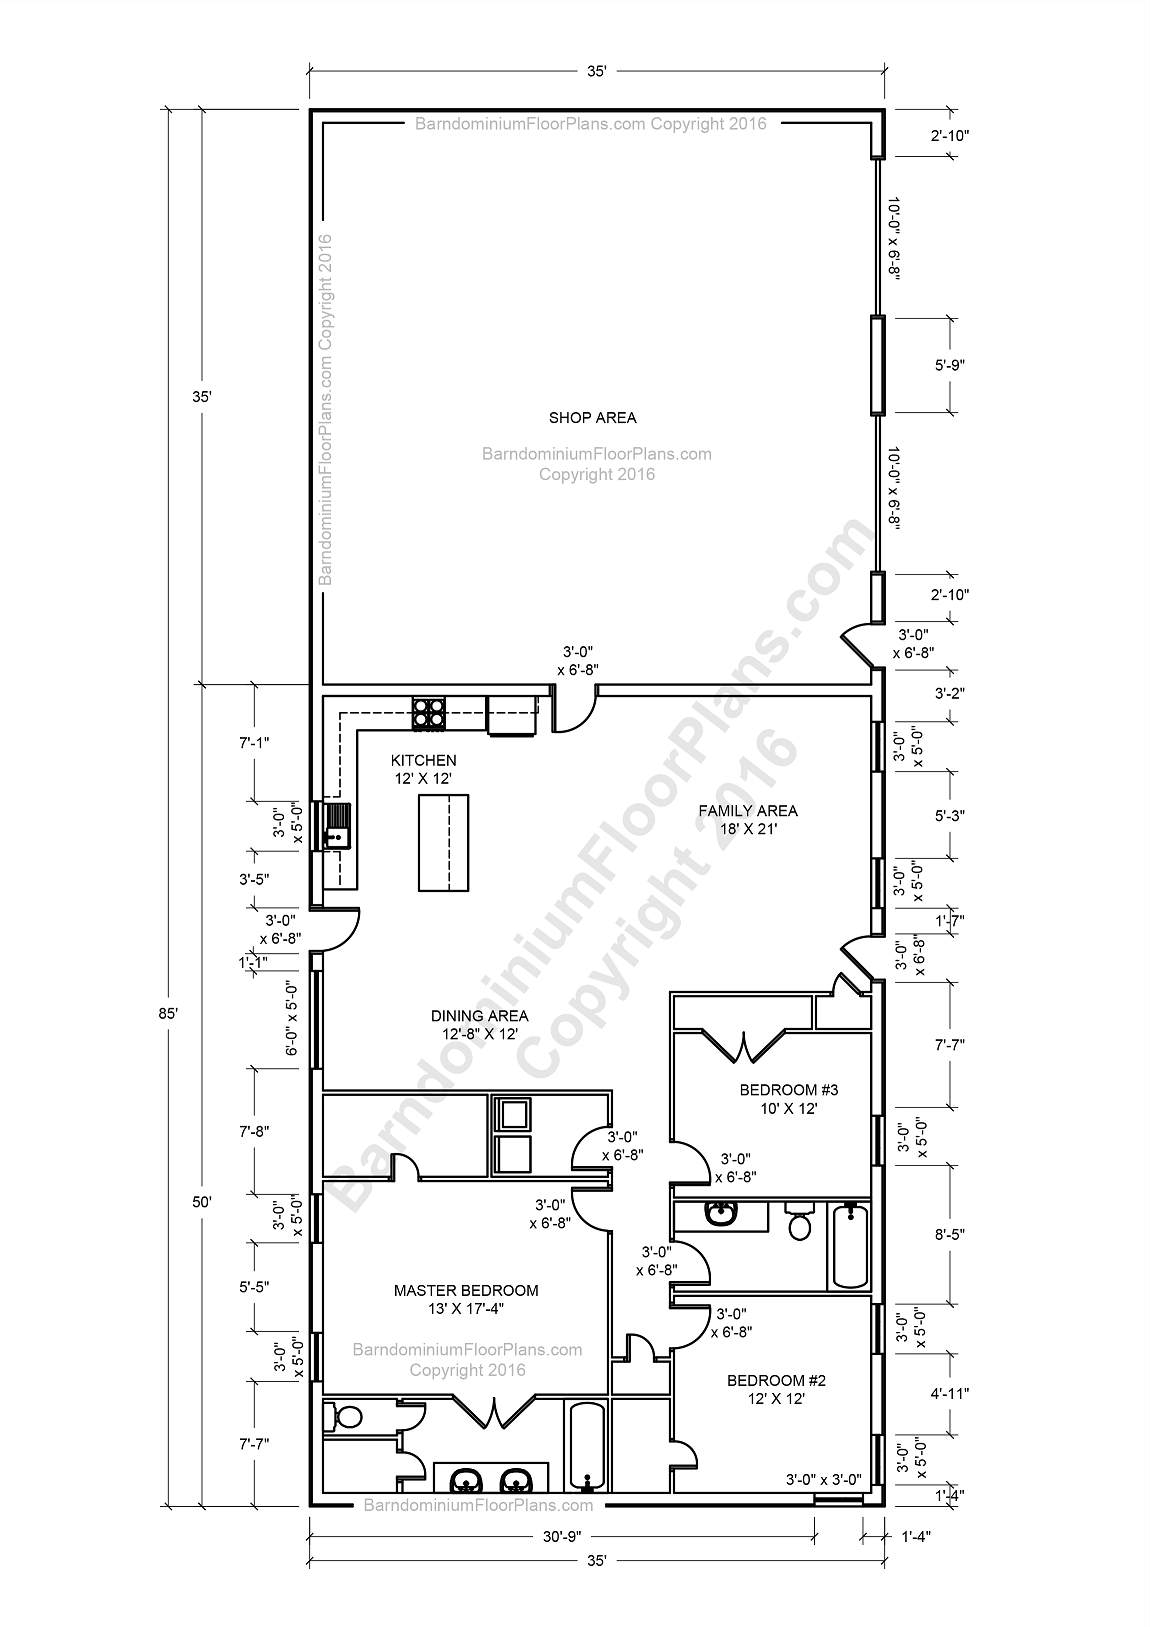 Best barndominium floor plans for planning your for Shop floor plans